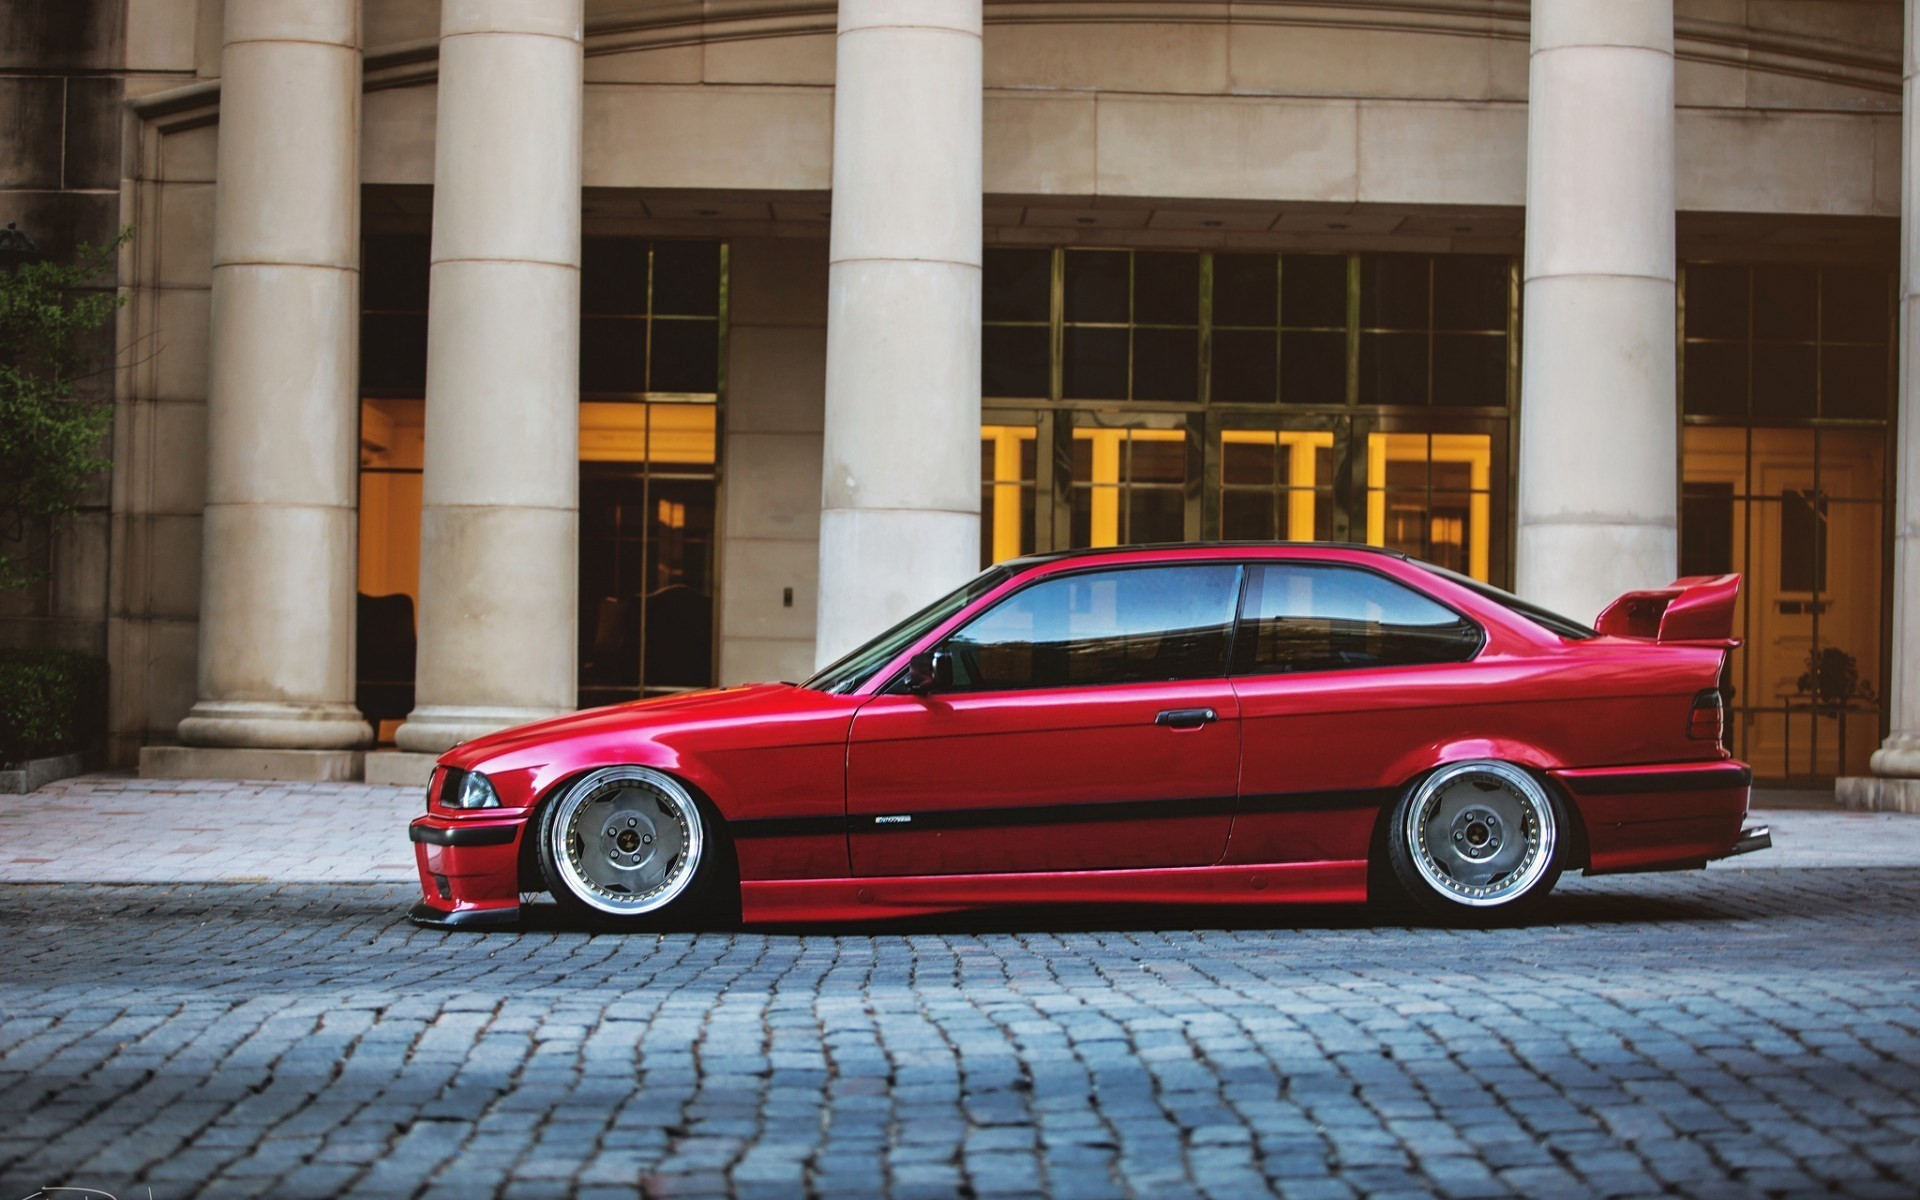 1920x1200 Bmw E36 Red Tuning Street Hd Wallpaper | Best Desktop Wallpapers | Download  Wallpaper | Pinterest | Wallpaper and Hd wallpaper